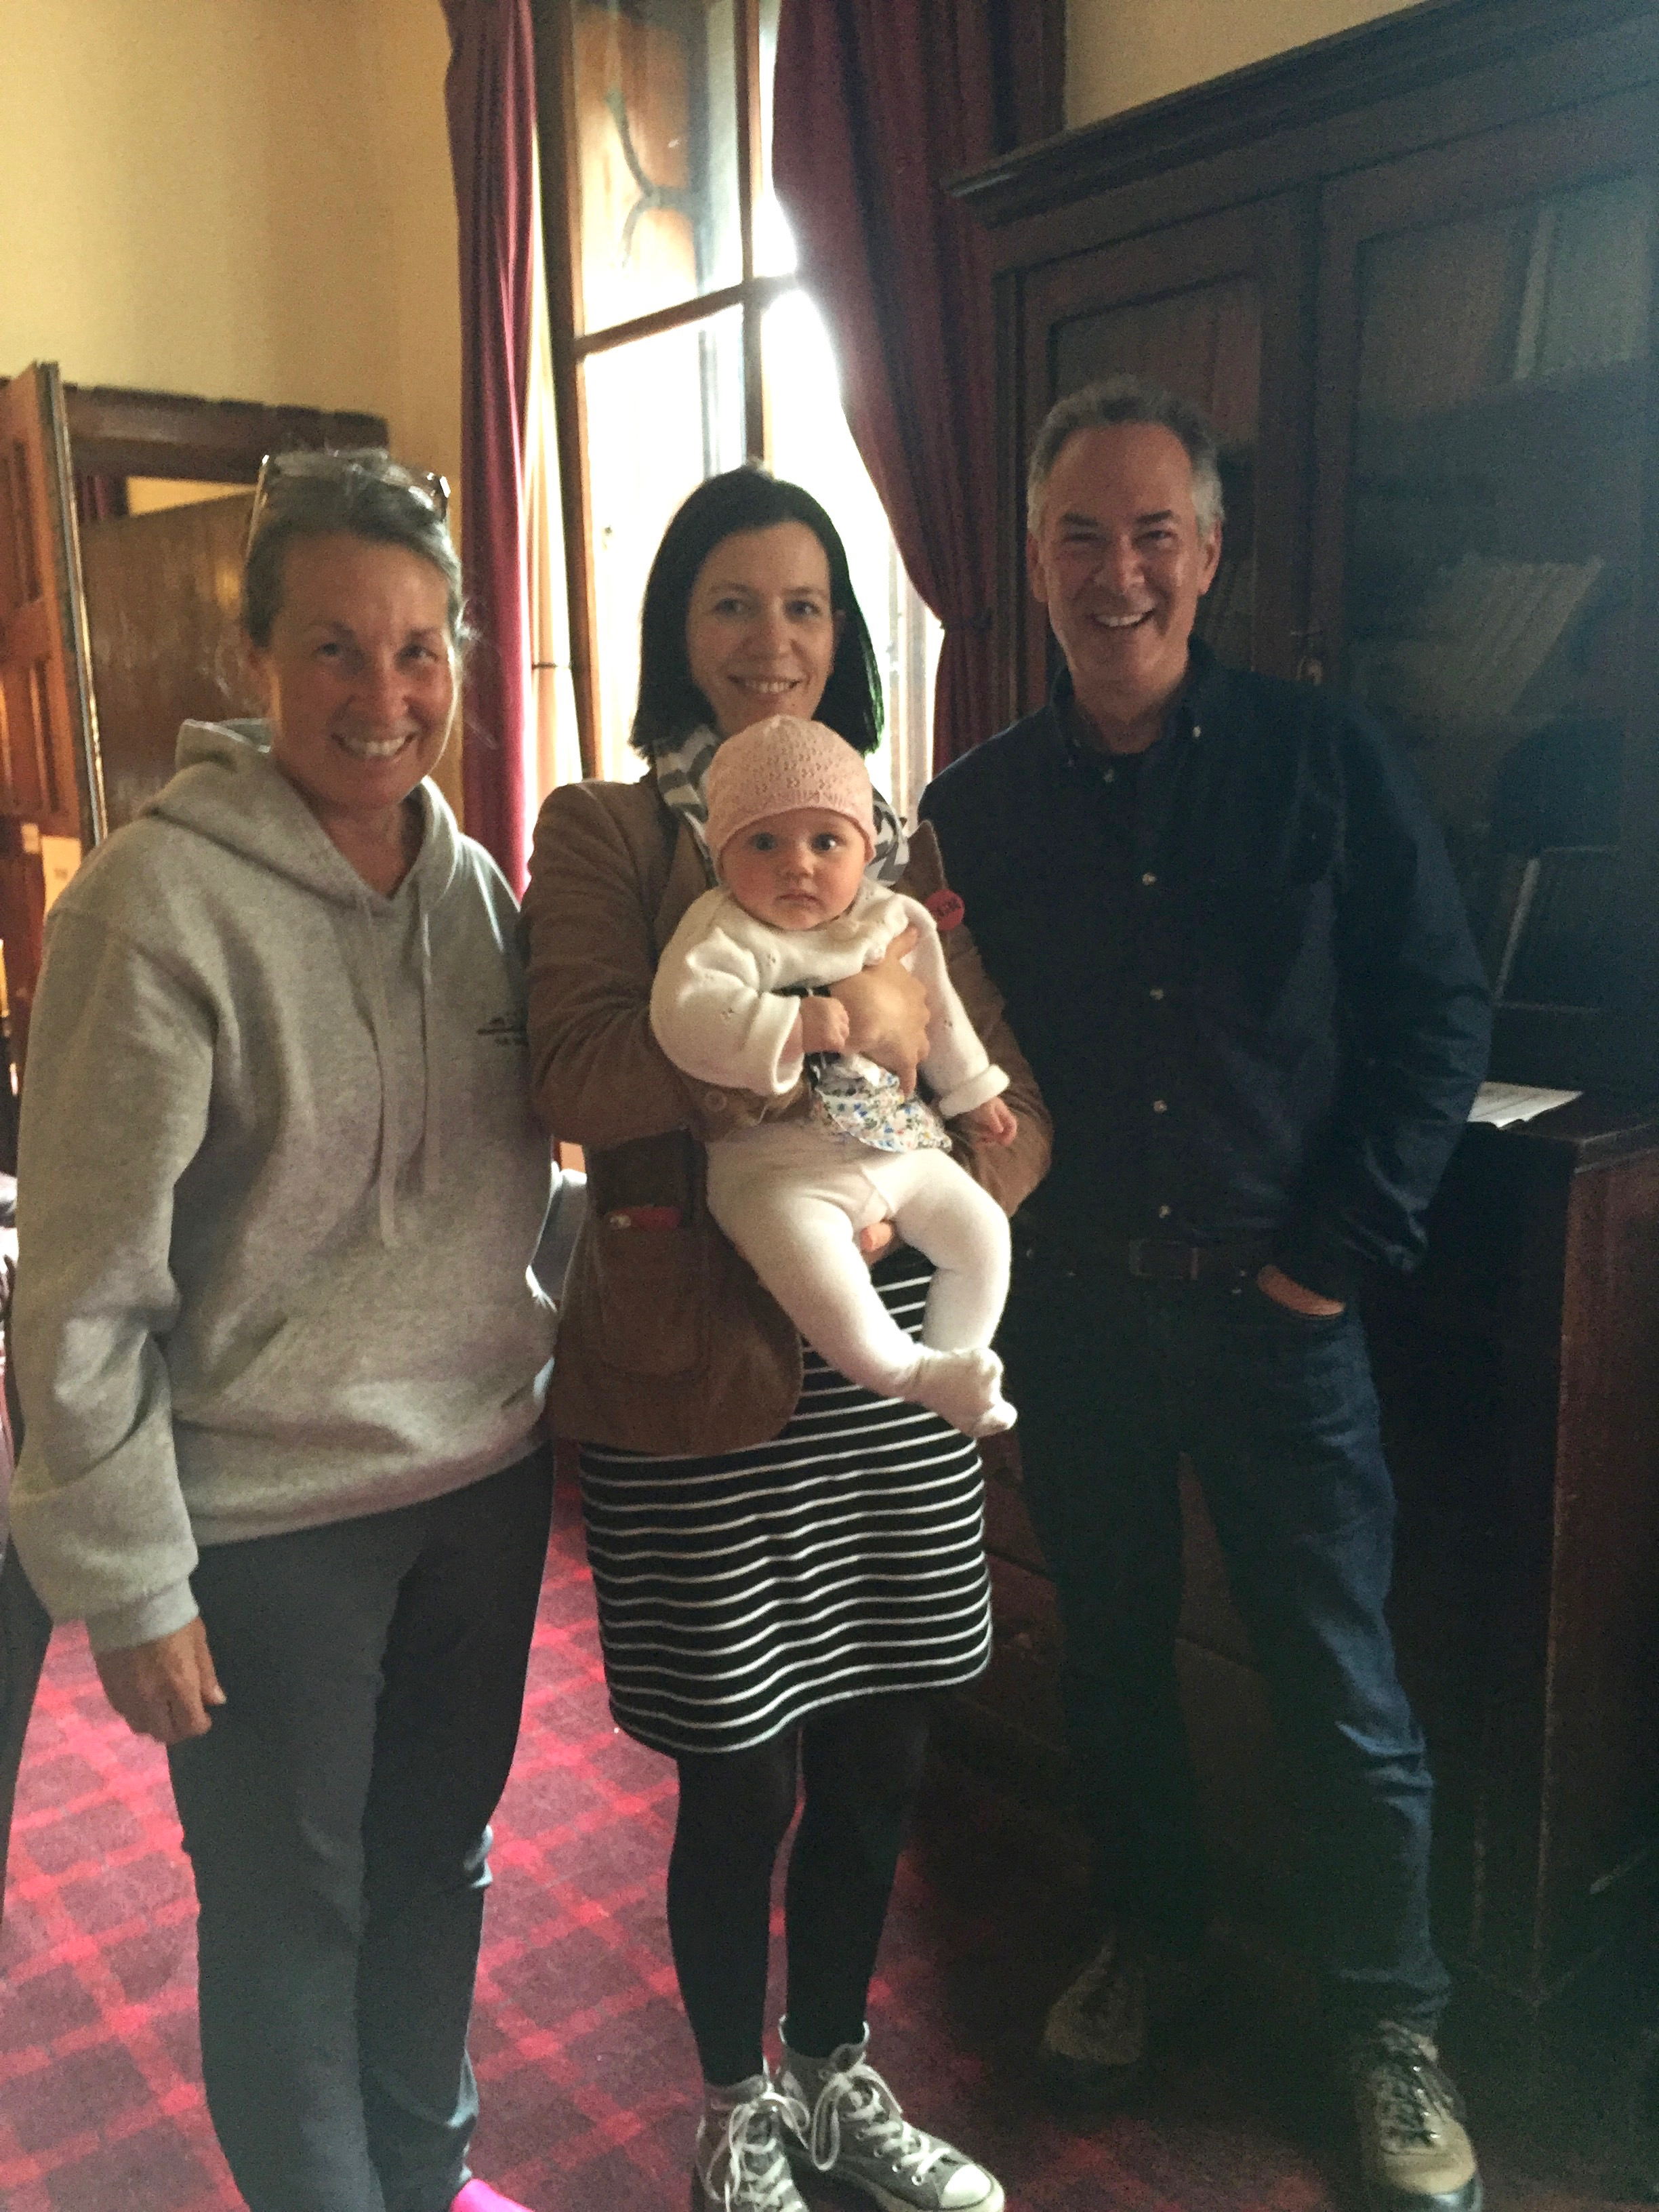 Here we are with the Retreat's youngest participant, Martha, and her mom, Aisling Agnew. Martha was consistently bright and cheery, a lovely and good-natured baby. Matthew and Aisling are very lucky indeed!